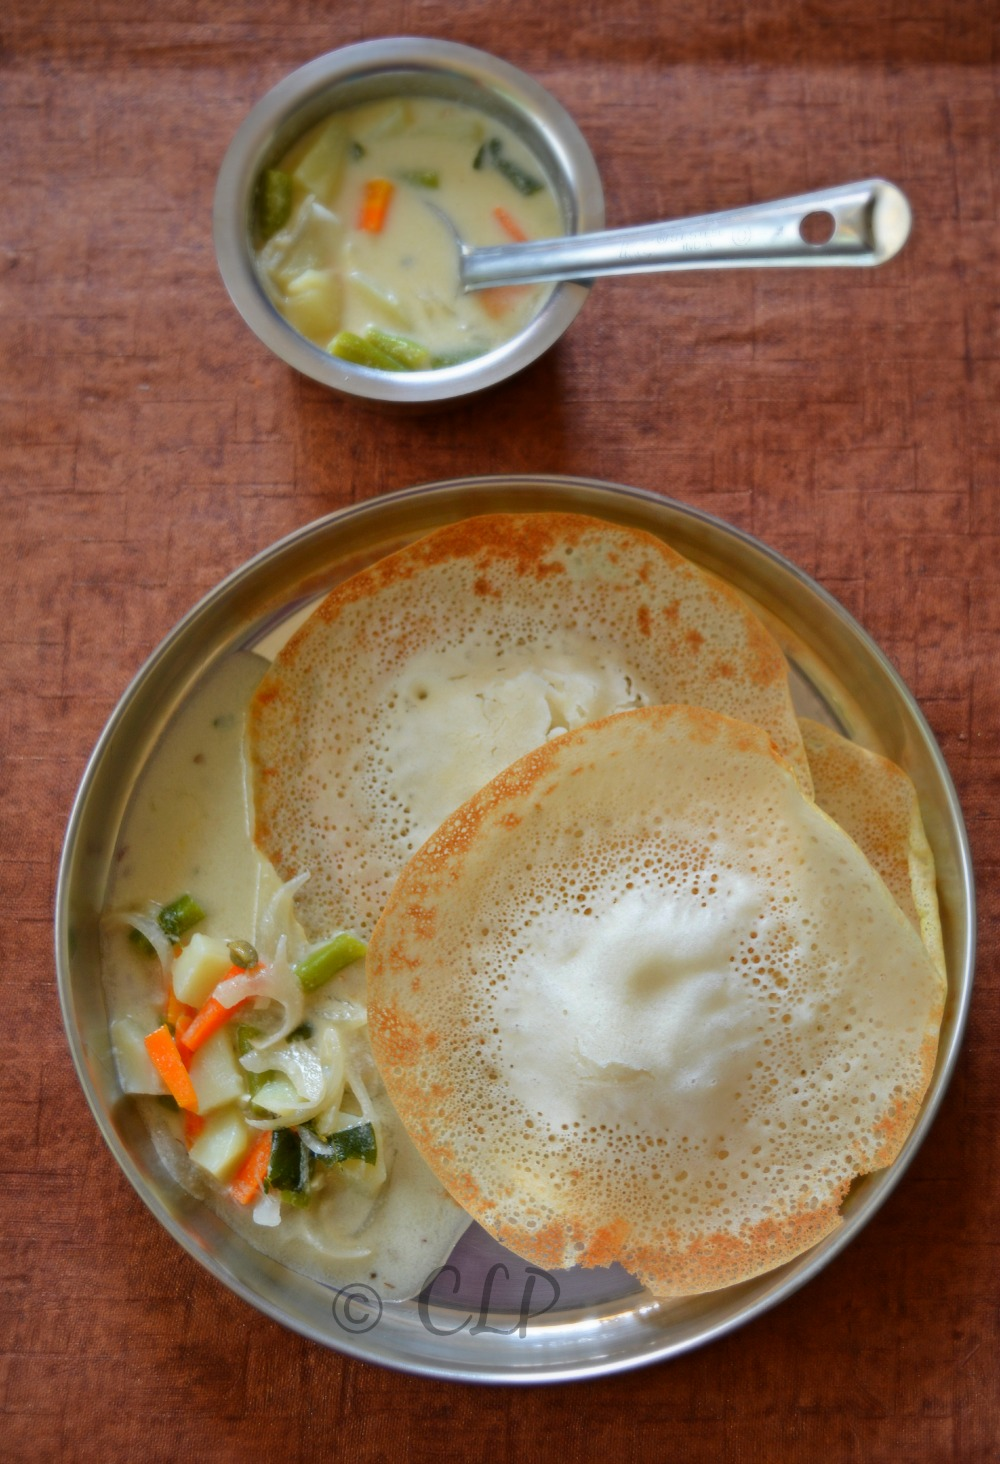 Kerala vegetable stew recipe - side dish for appam